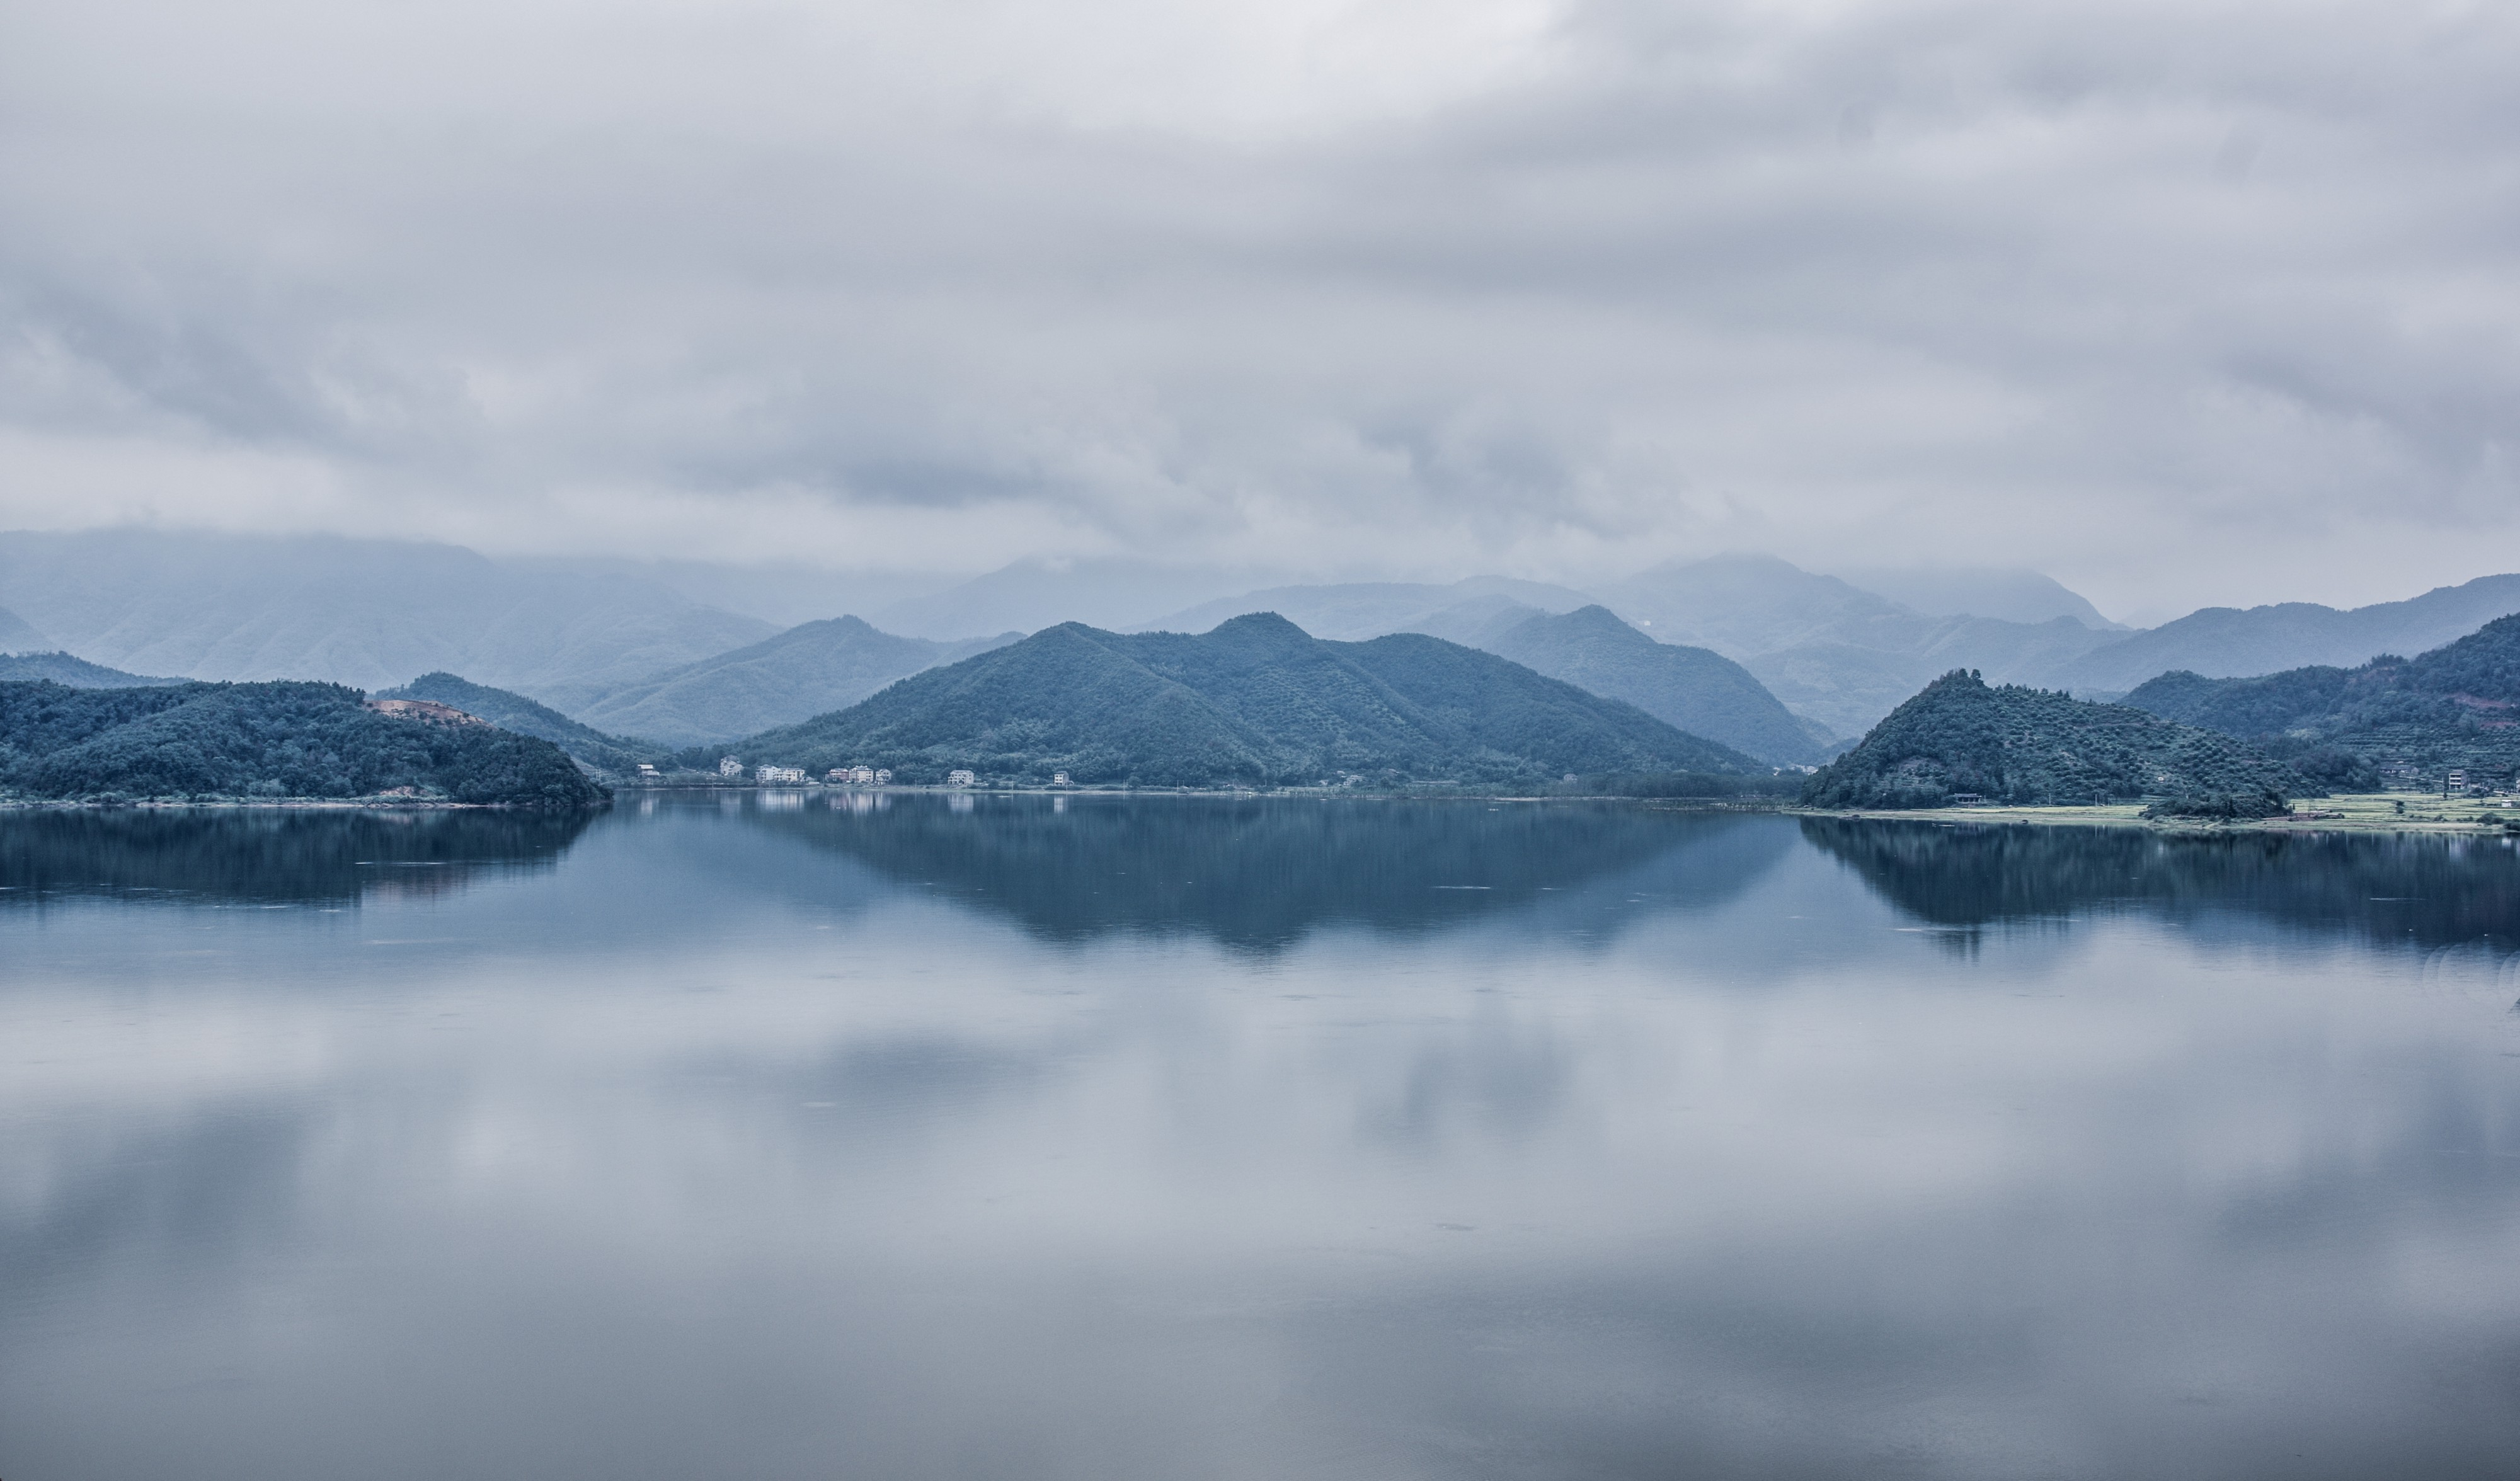 A wide lake with mountains in the background. Perfect for reflections.